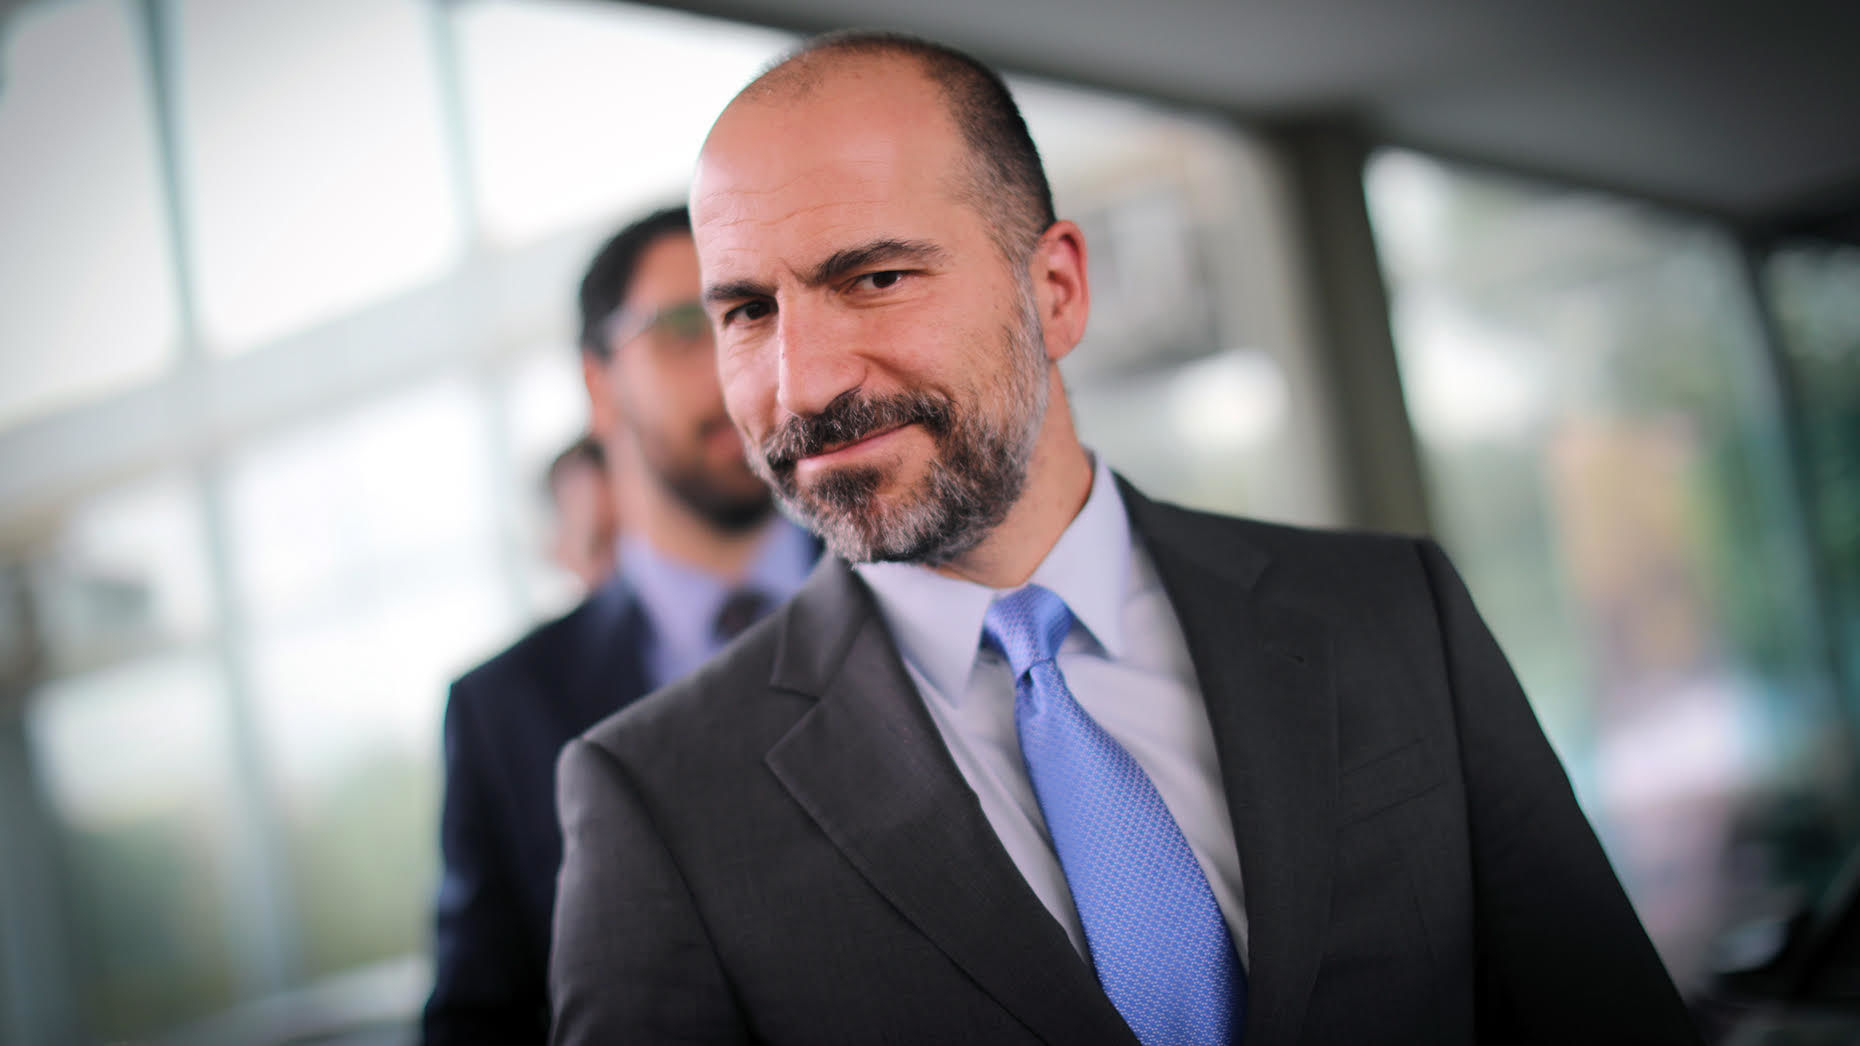 Uber CEO Dara Khosrowshahi. Photo: Bloomberg